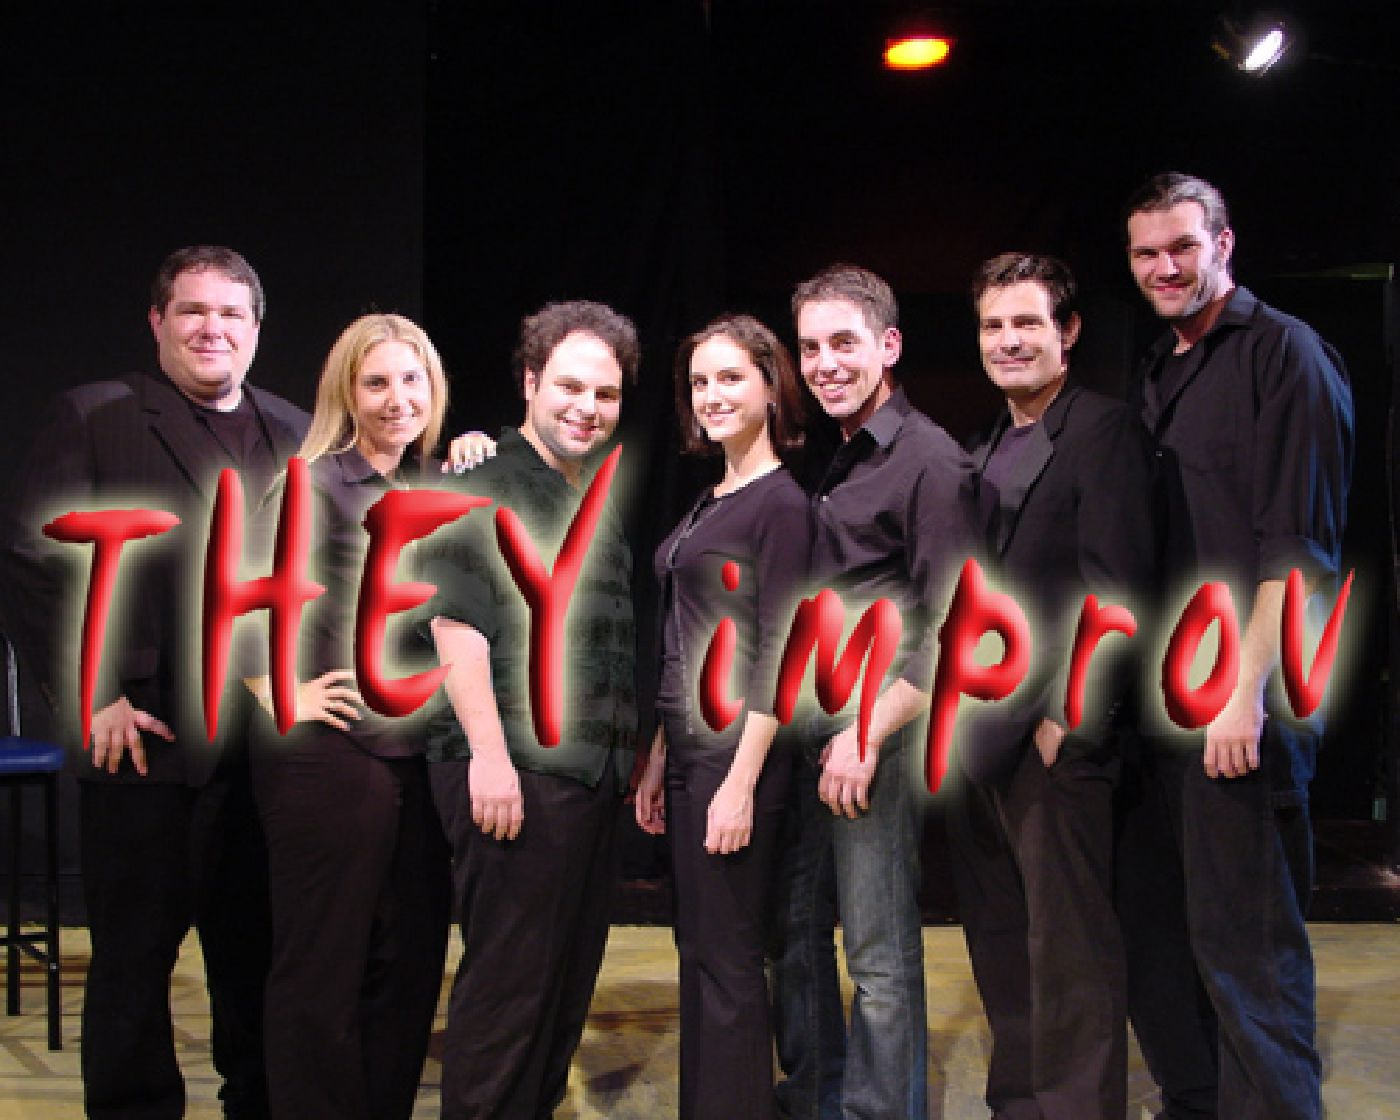 Orlando improv show corporate events private parties banquets Central Florida